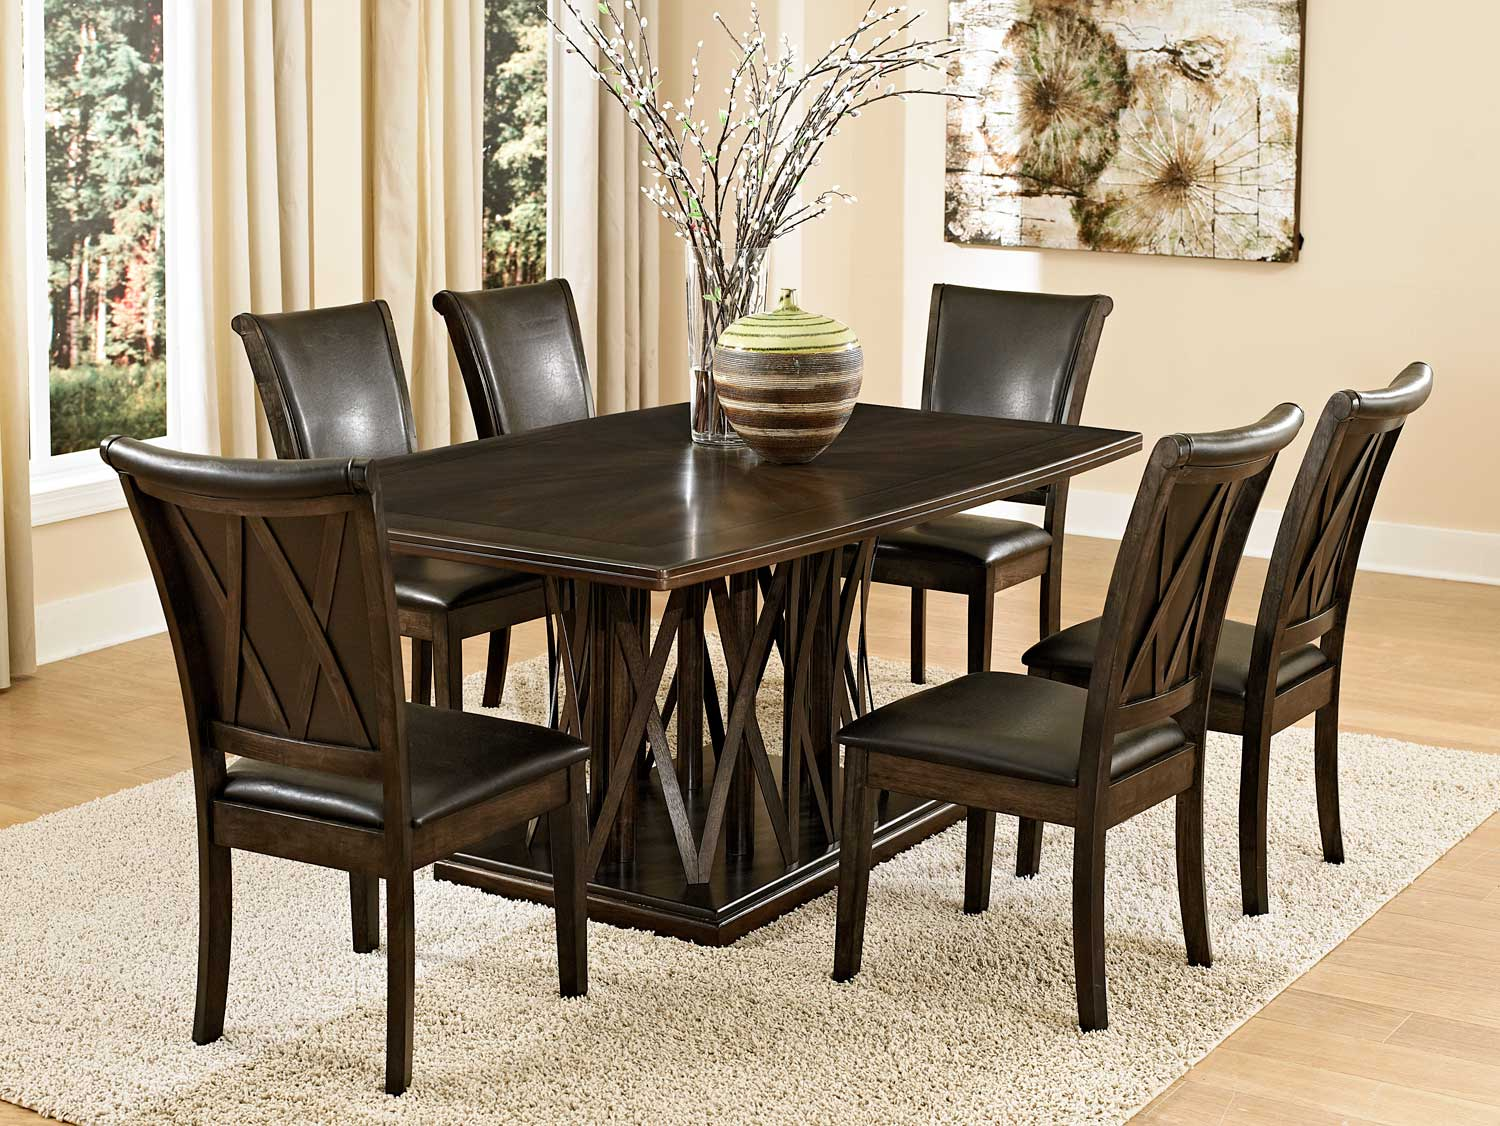 Homelegance Garvey Dining Set with Dark Brown Chairs